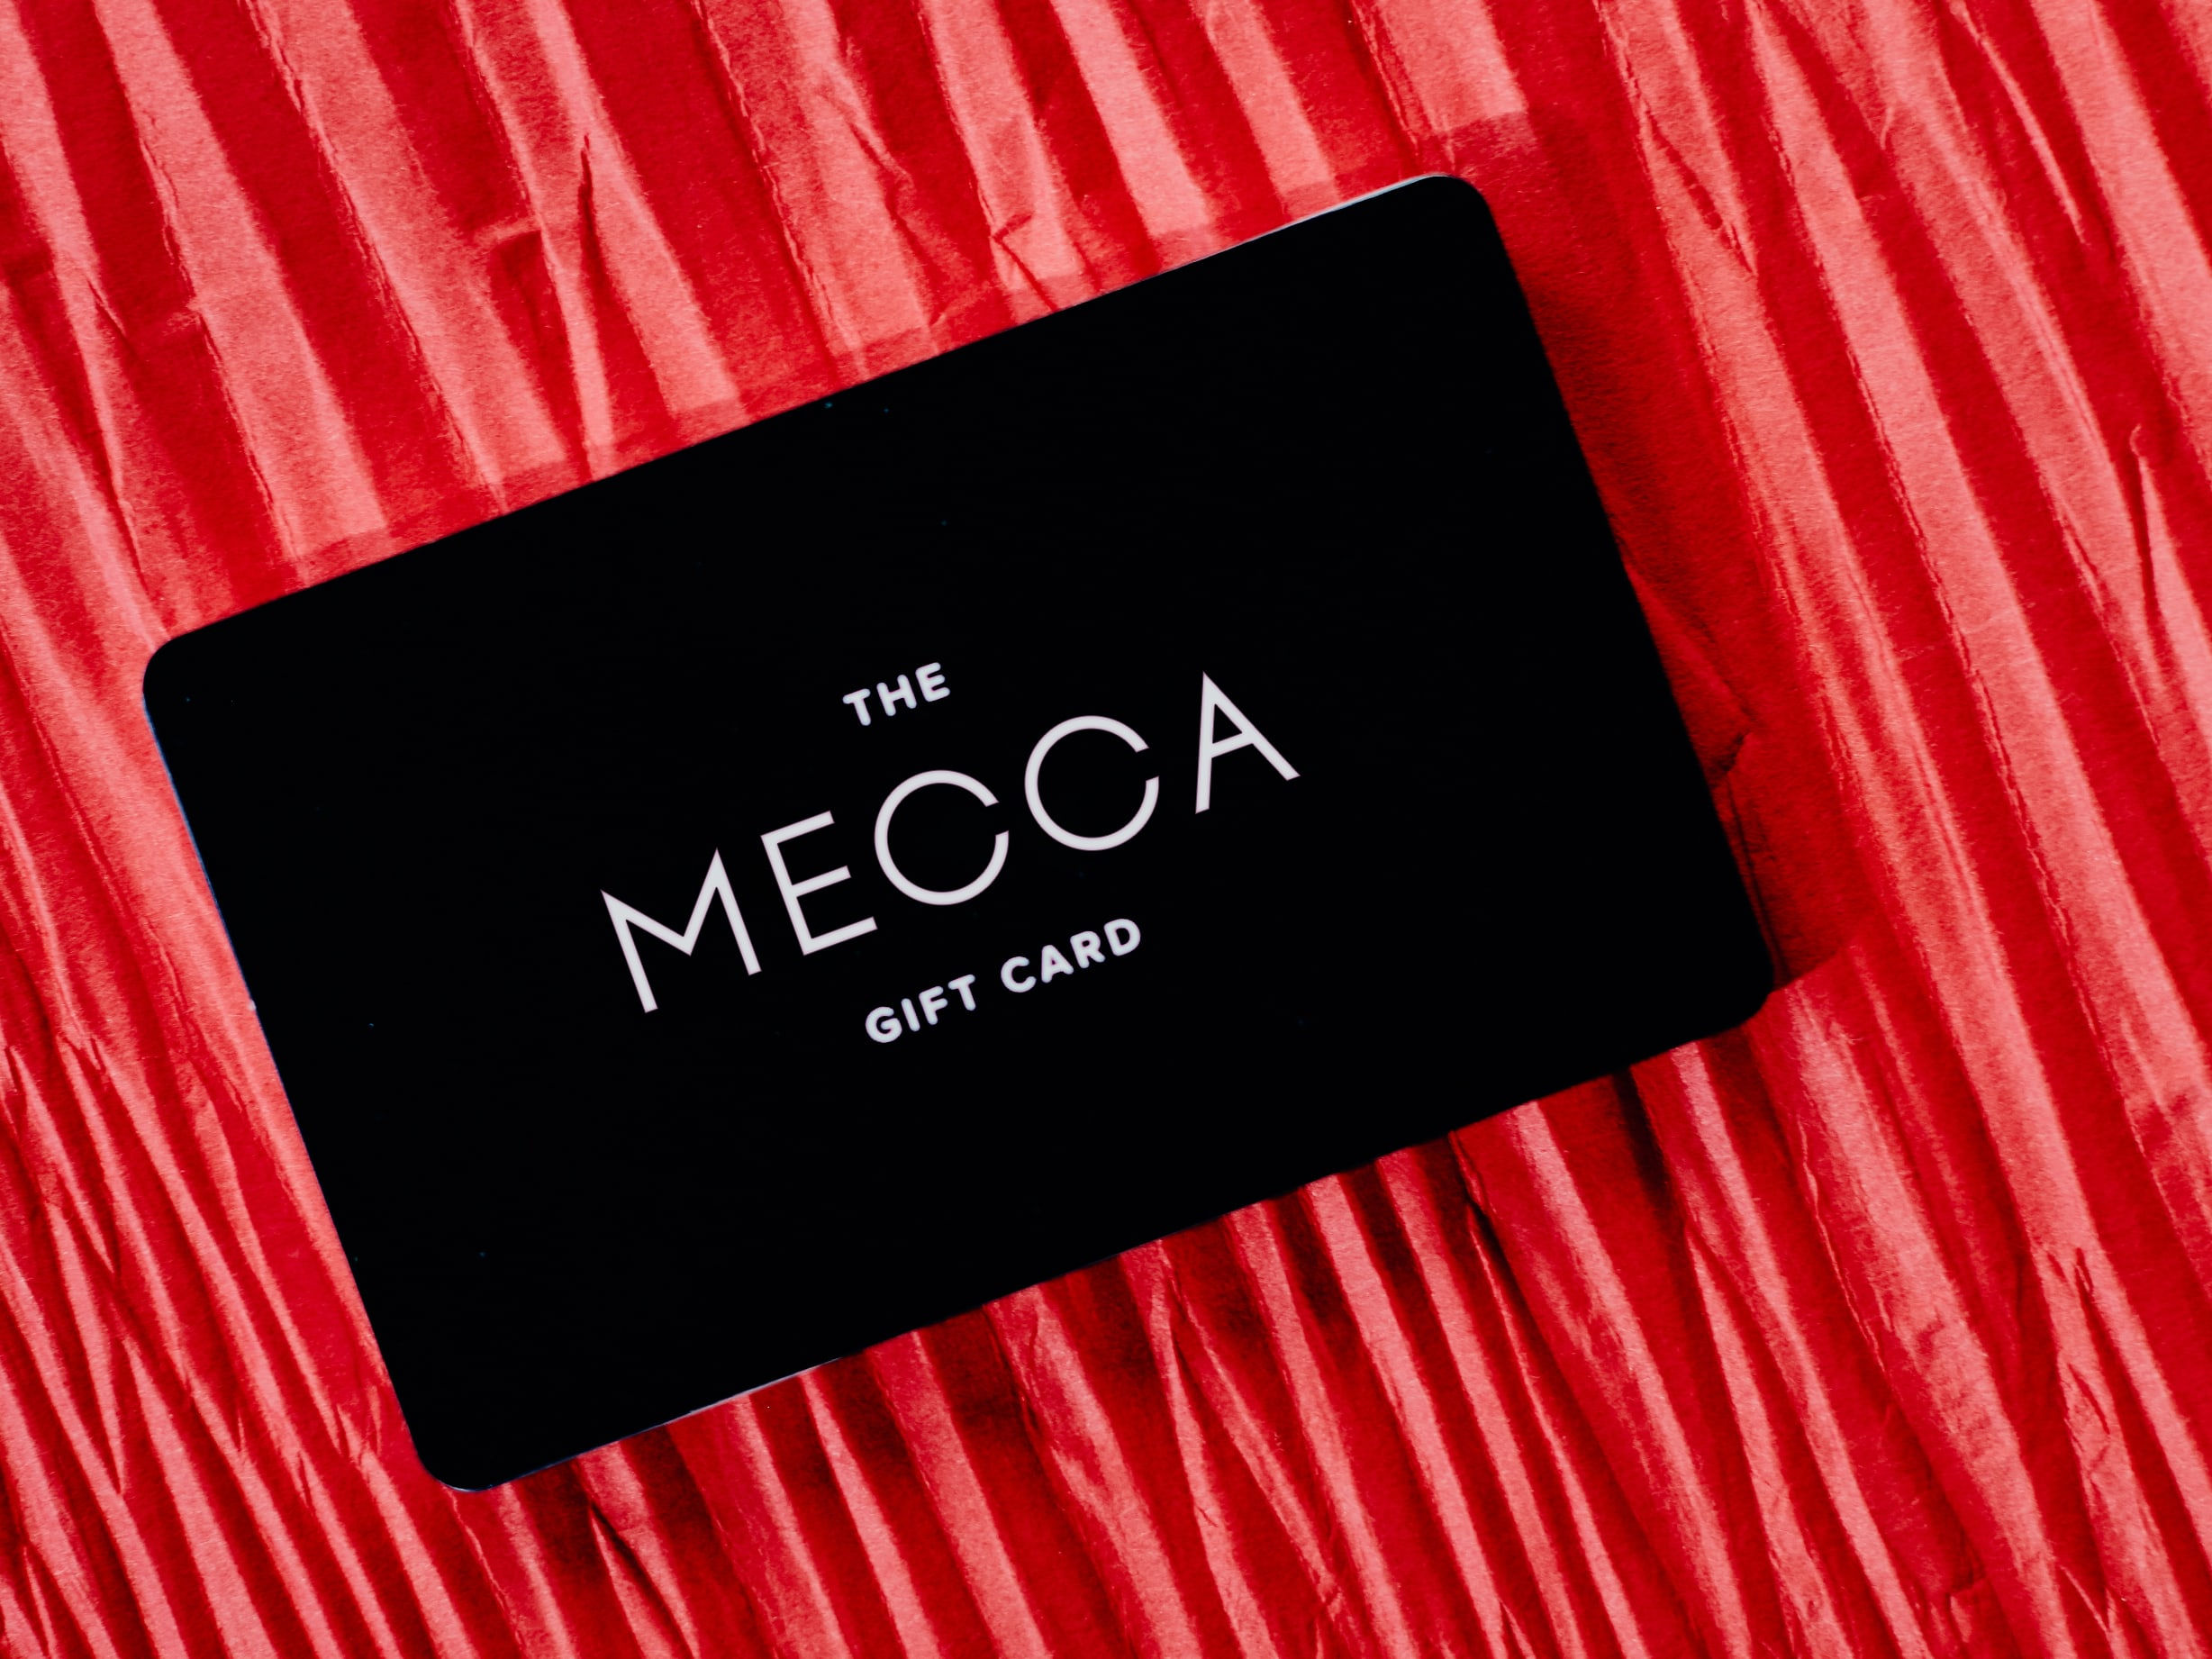 The MECCA Gift Card